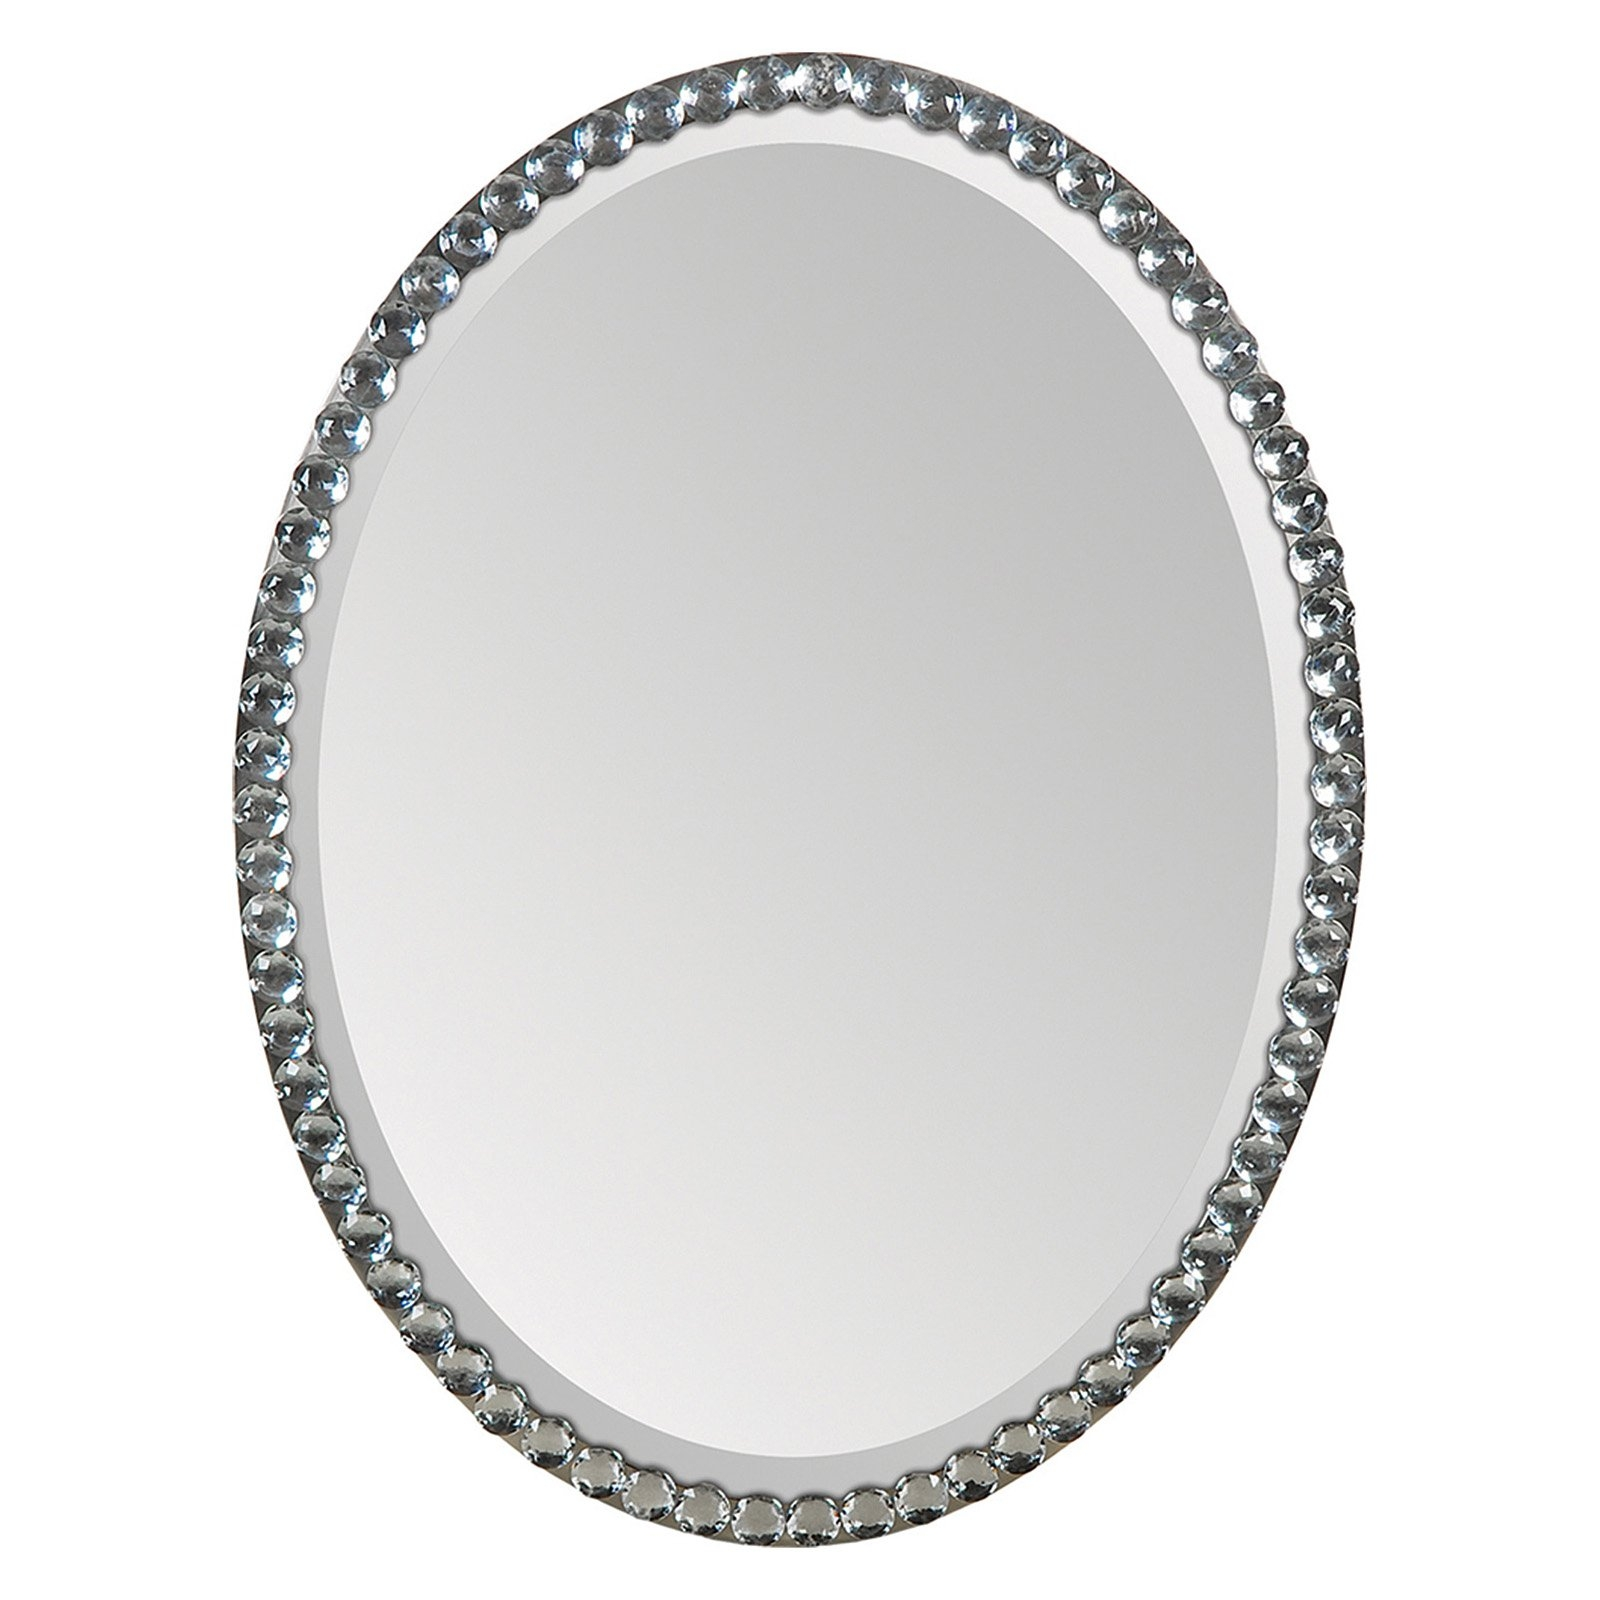 Ren Wil Oval Crystal Framed Wall Mirror 24w X 32h In Walmart Regarding Silver Oval Mirror (Image 9 of 15)